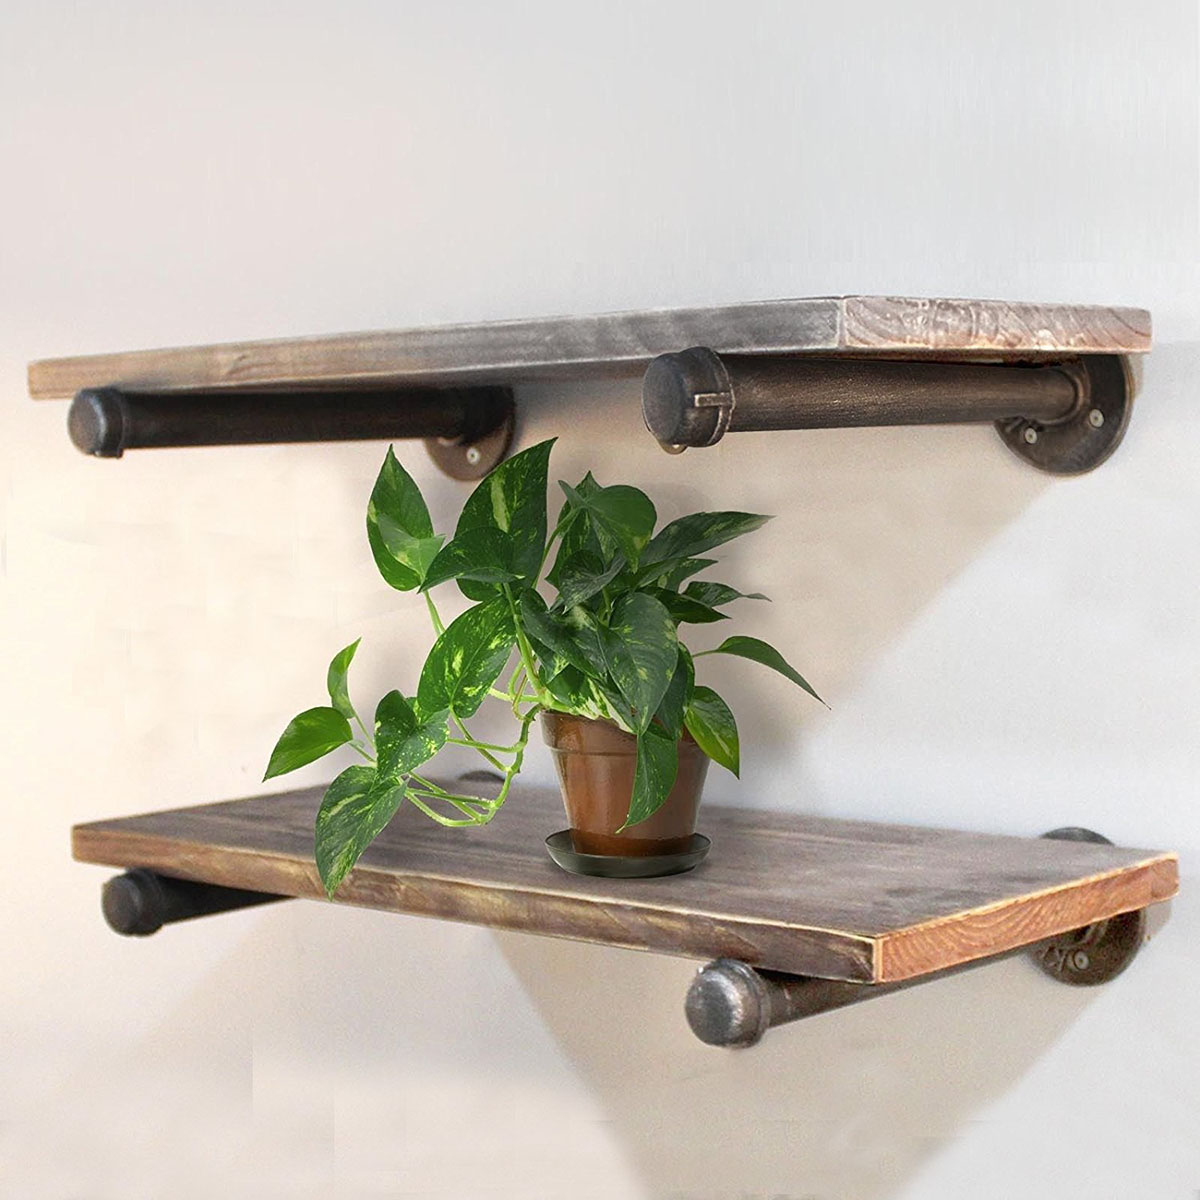 24 36 Industrial Rustic Pipe Wall Shelf Bracket Storage